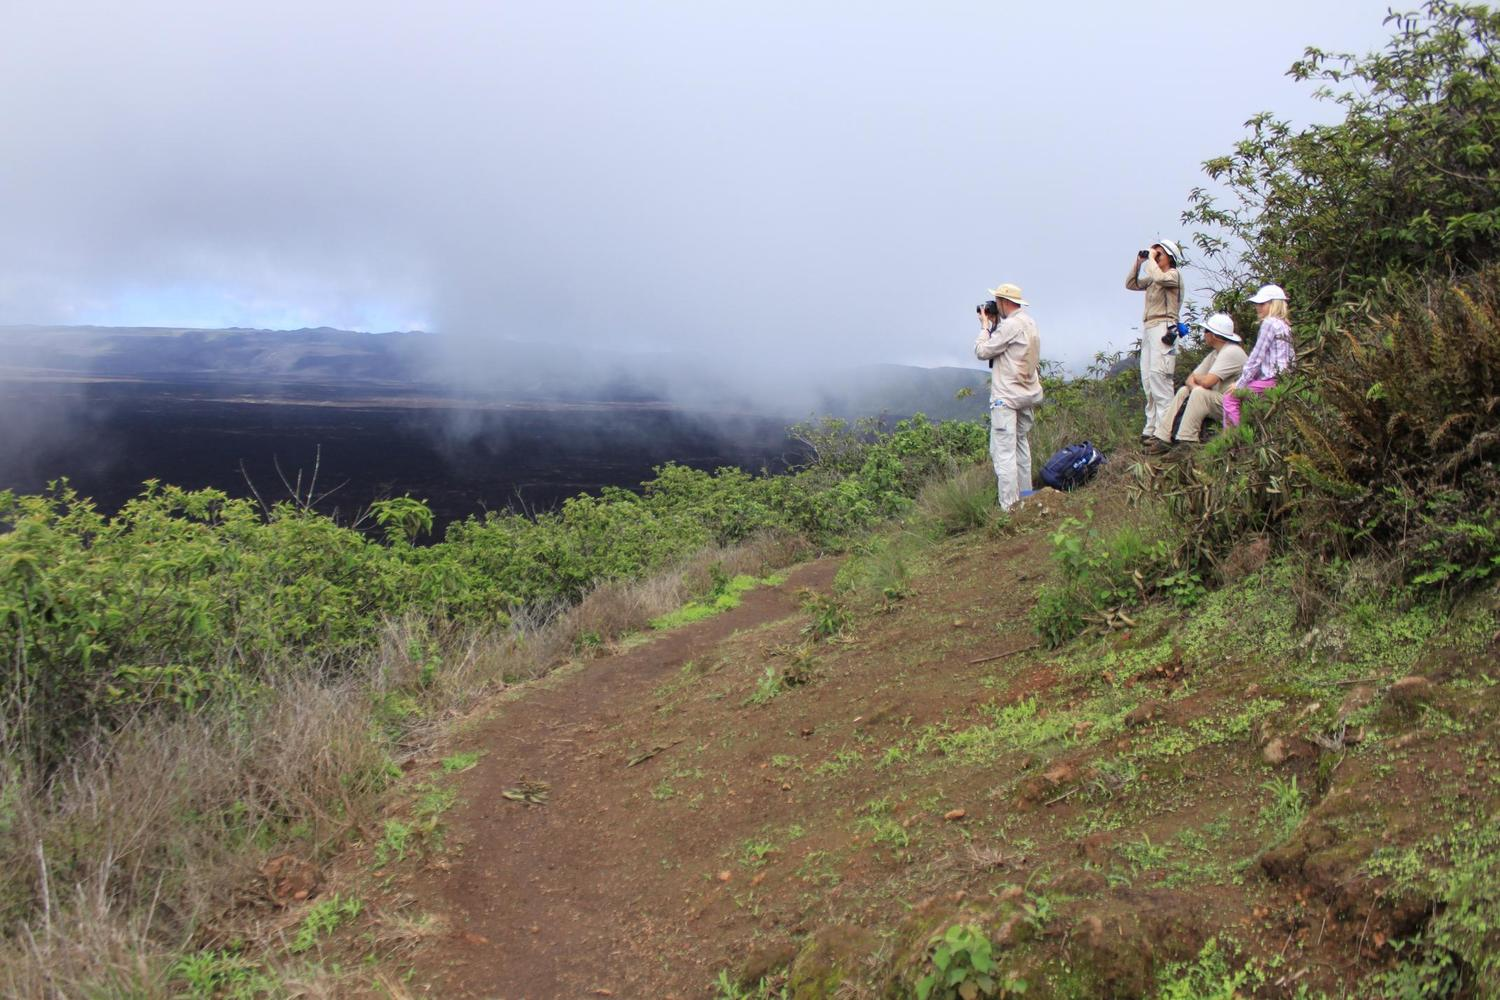 Looking out over the world's second largest crater, Galapagos